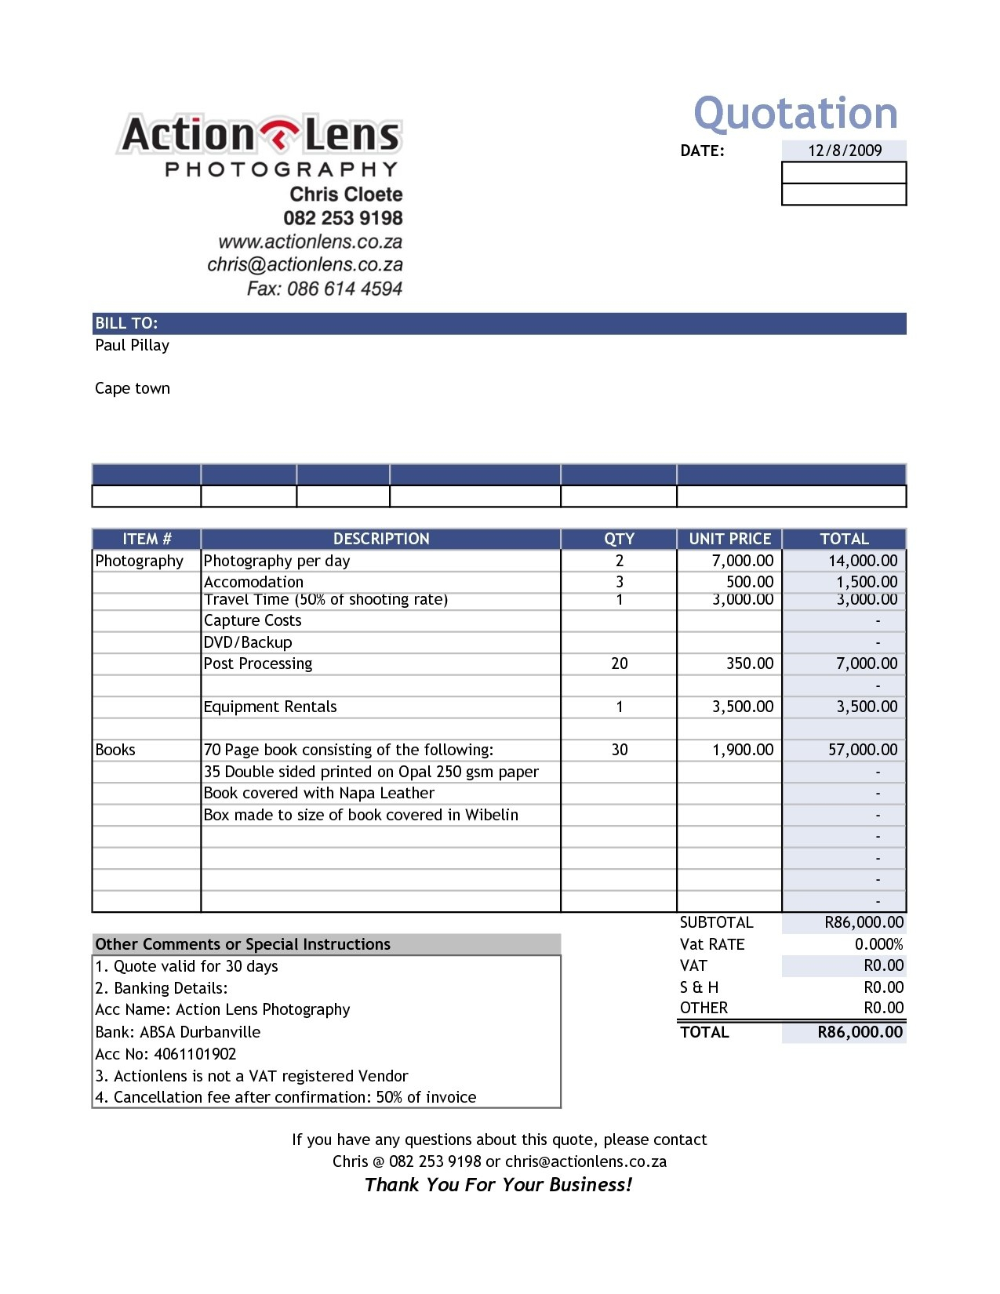 Invoice Template Xls Free Download Seven Easy Ways To And Resume Regarding Invoice Template Xls Free Down Invoice Format Invoice Template Invoice Template Word